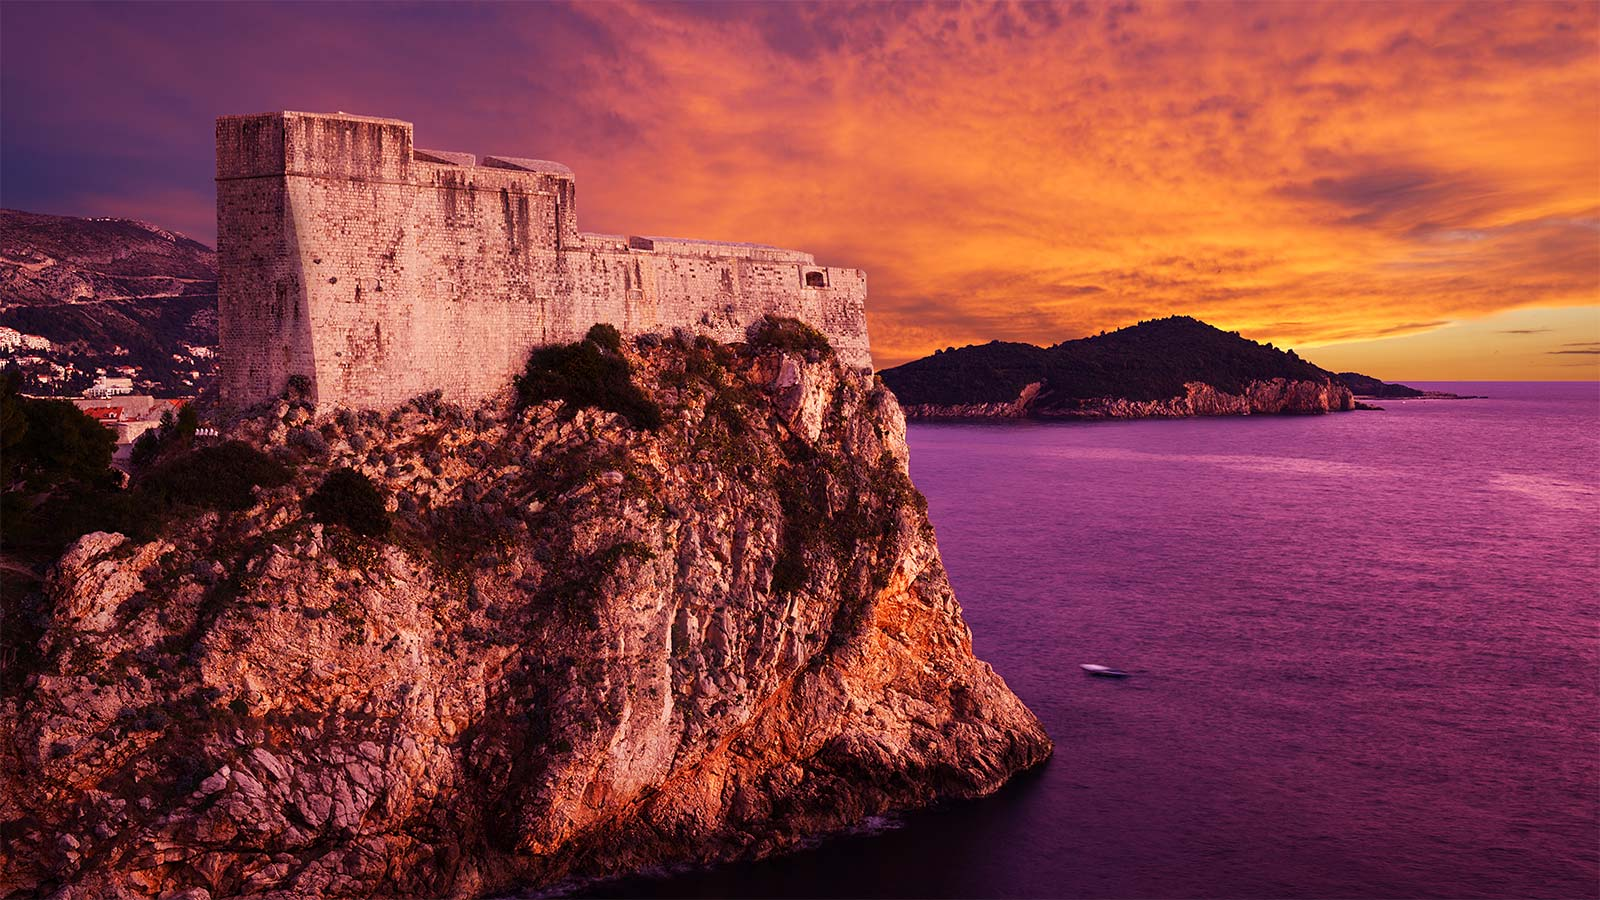 Karte Split Dubrovnik.Atlant Travel Agency Let Your Every Journey Begin With Us